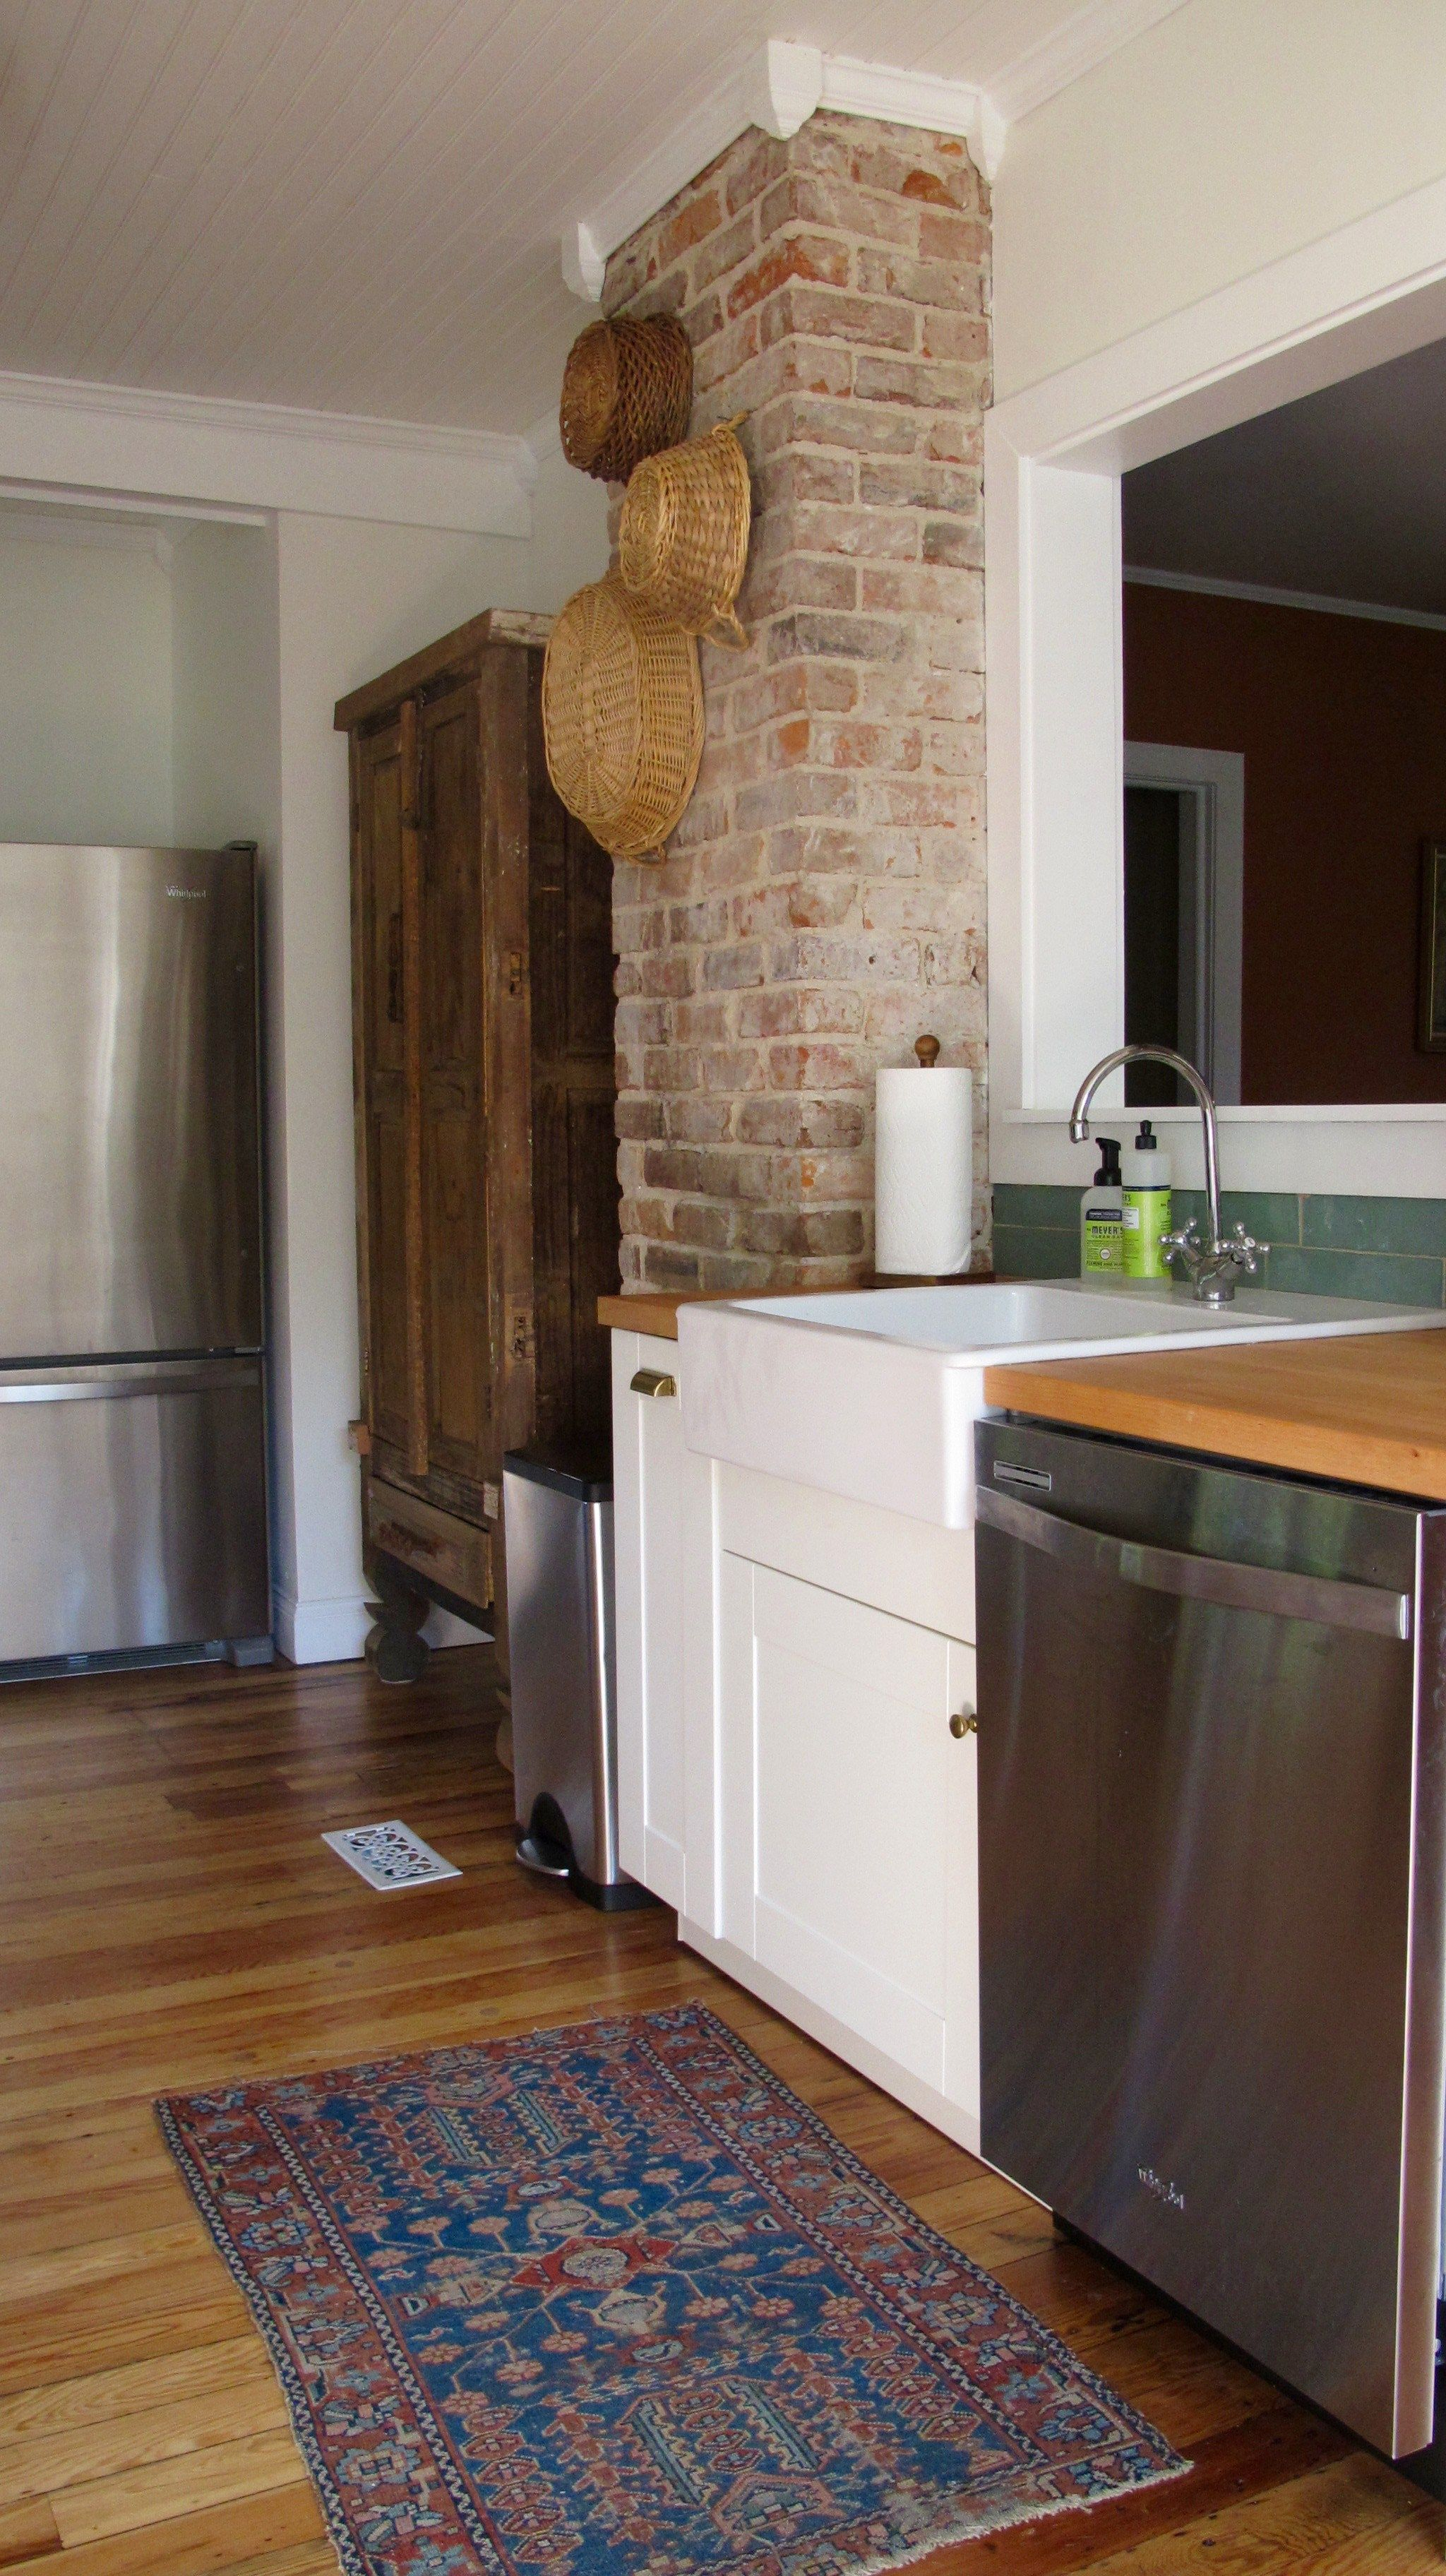 Kitchen Remodel Exposed Brick Chimney With Corner Blocks And Crown